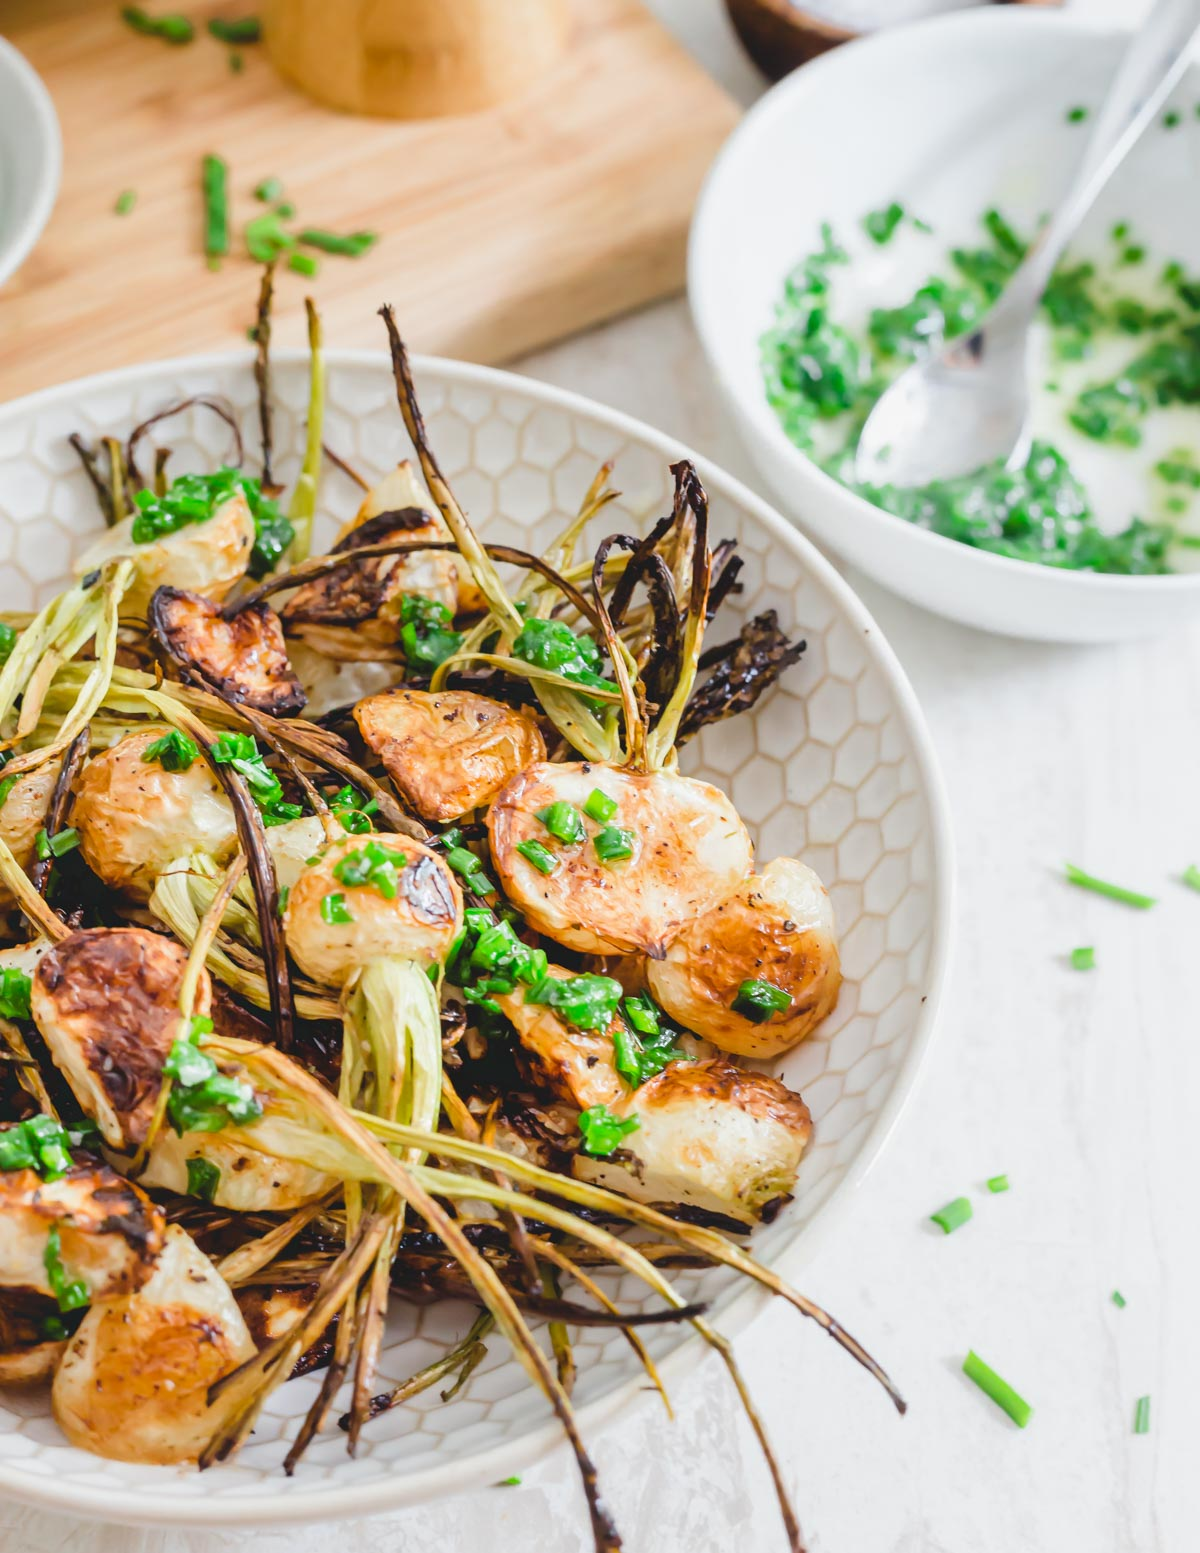 Crispy roasted turnips with stems attached in a bowl drizzled in a melted butter chive sauce.